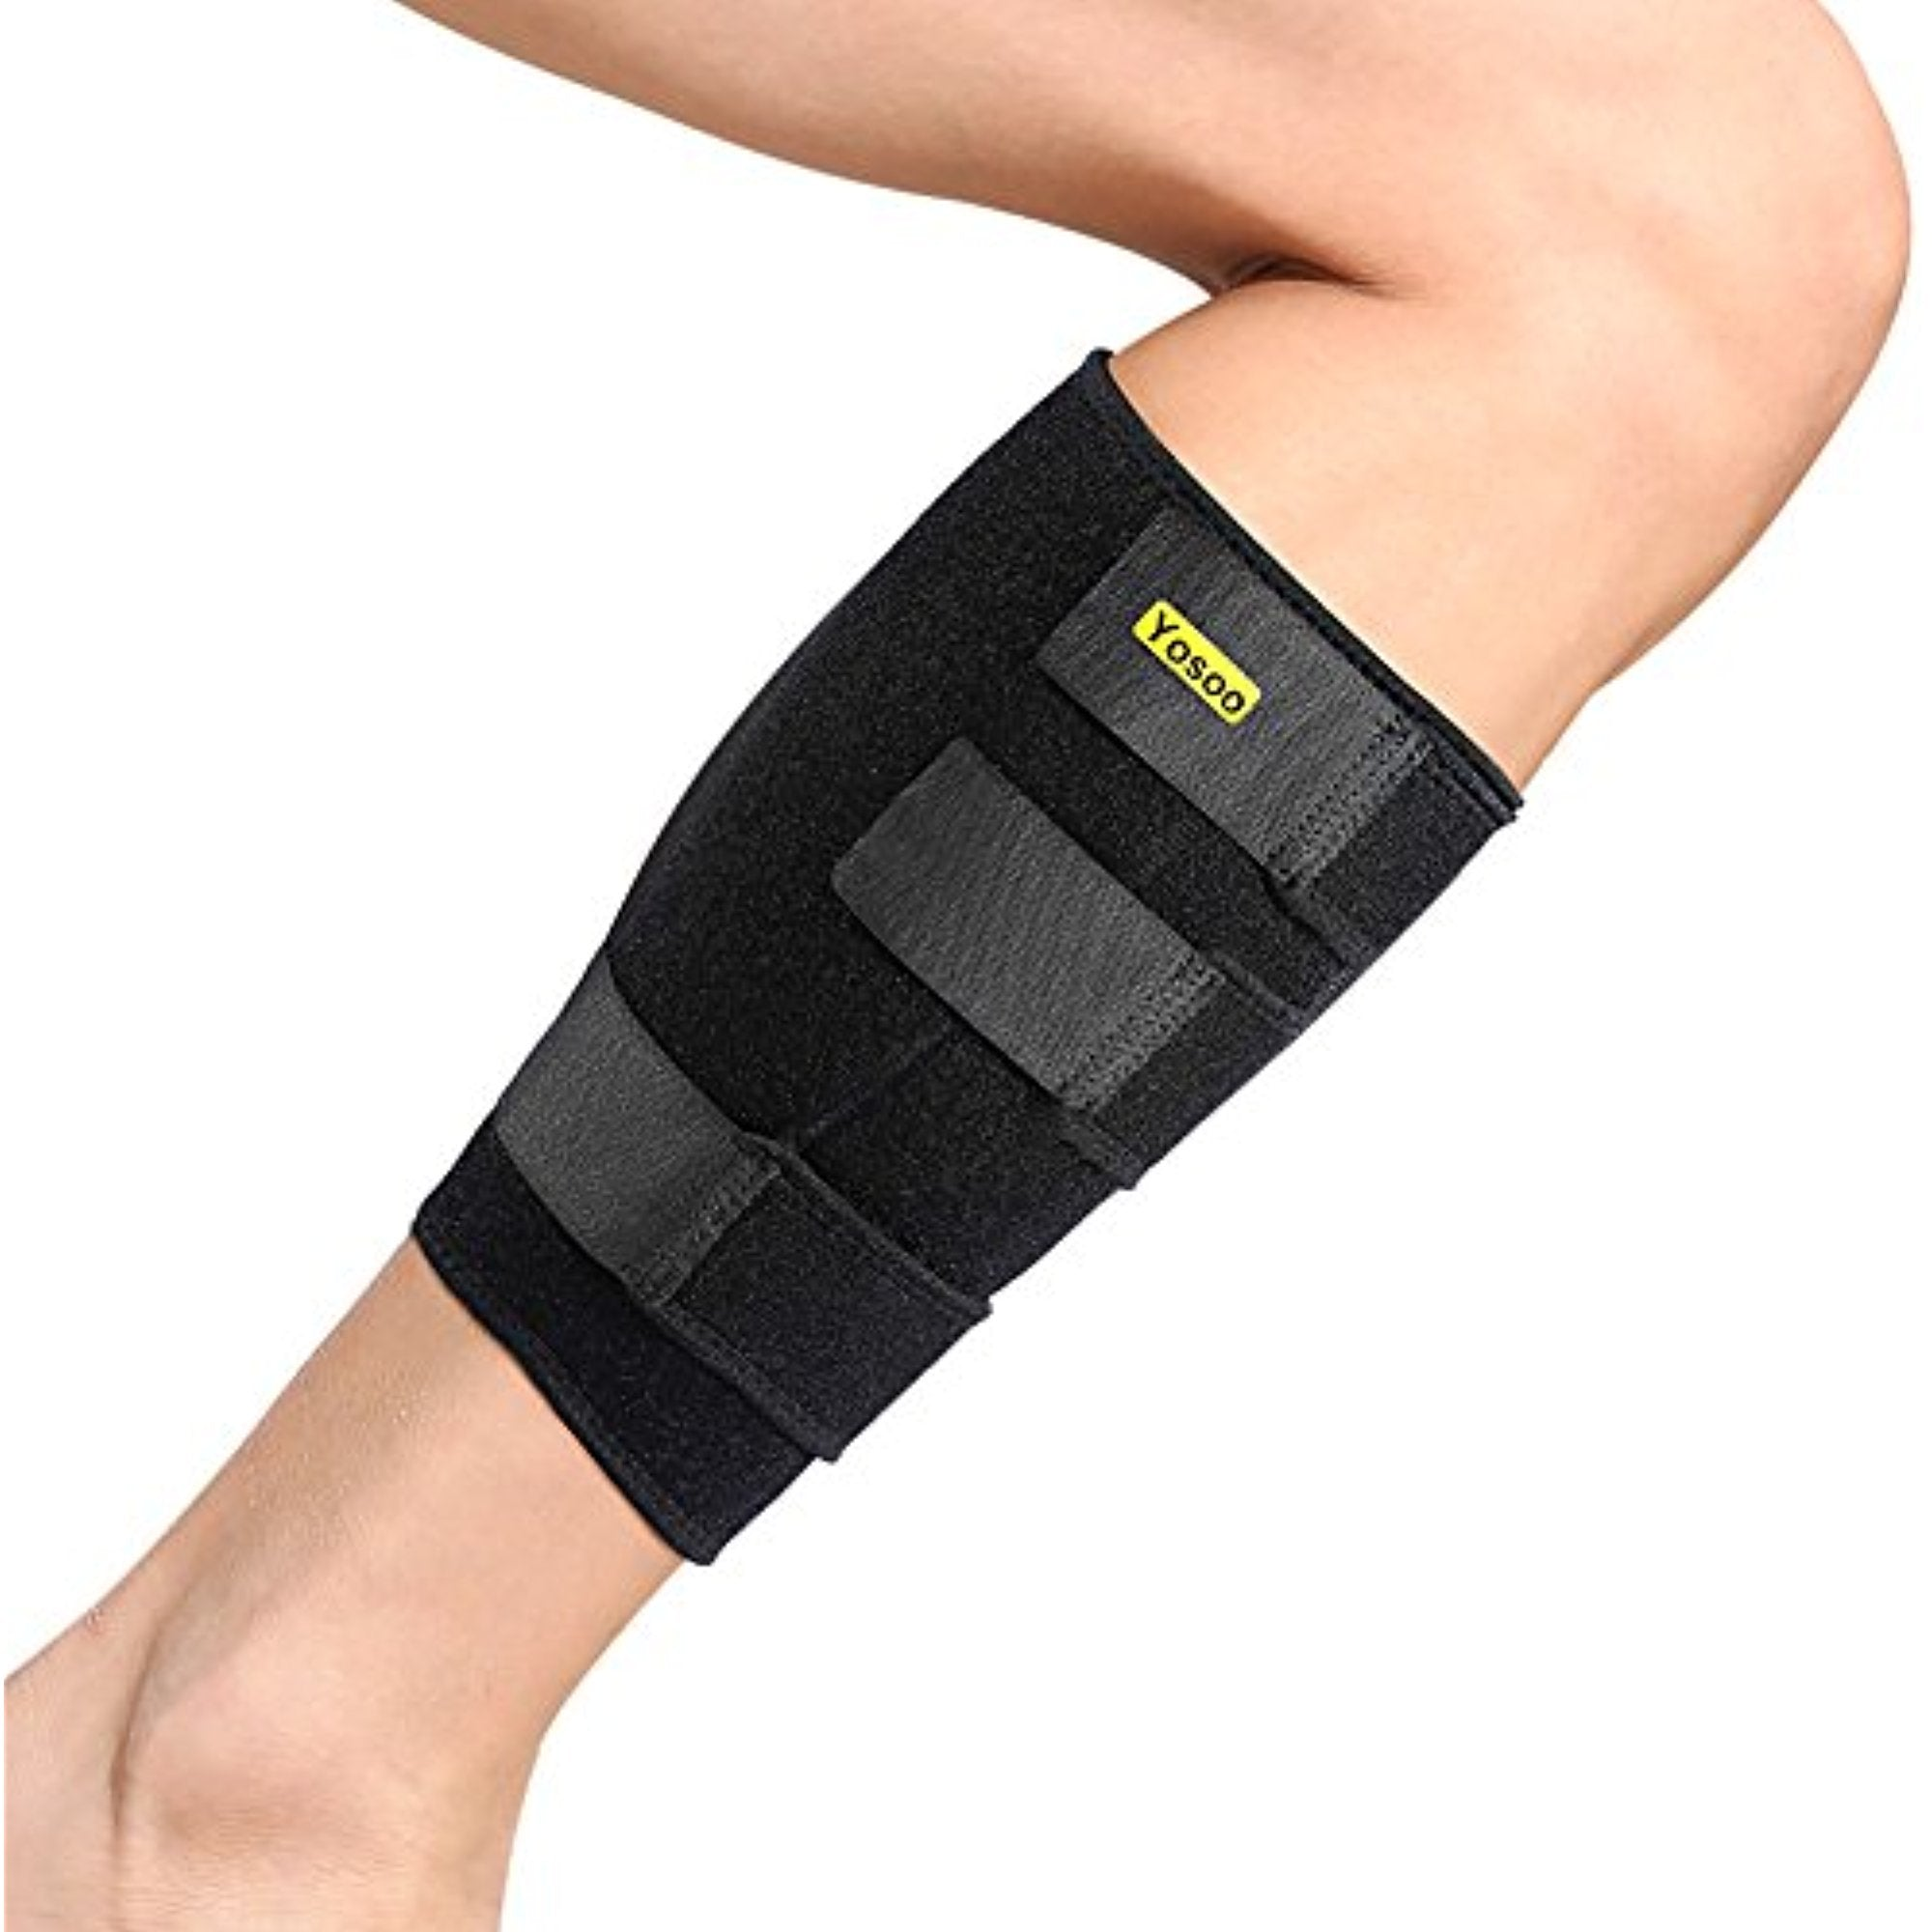 Leg Compression Wrap Support